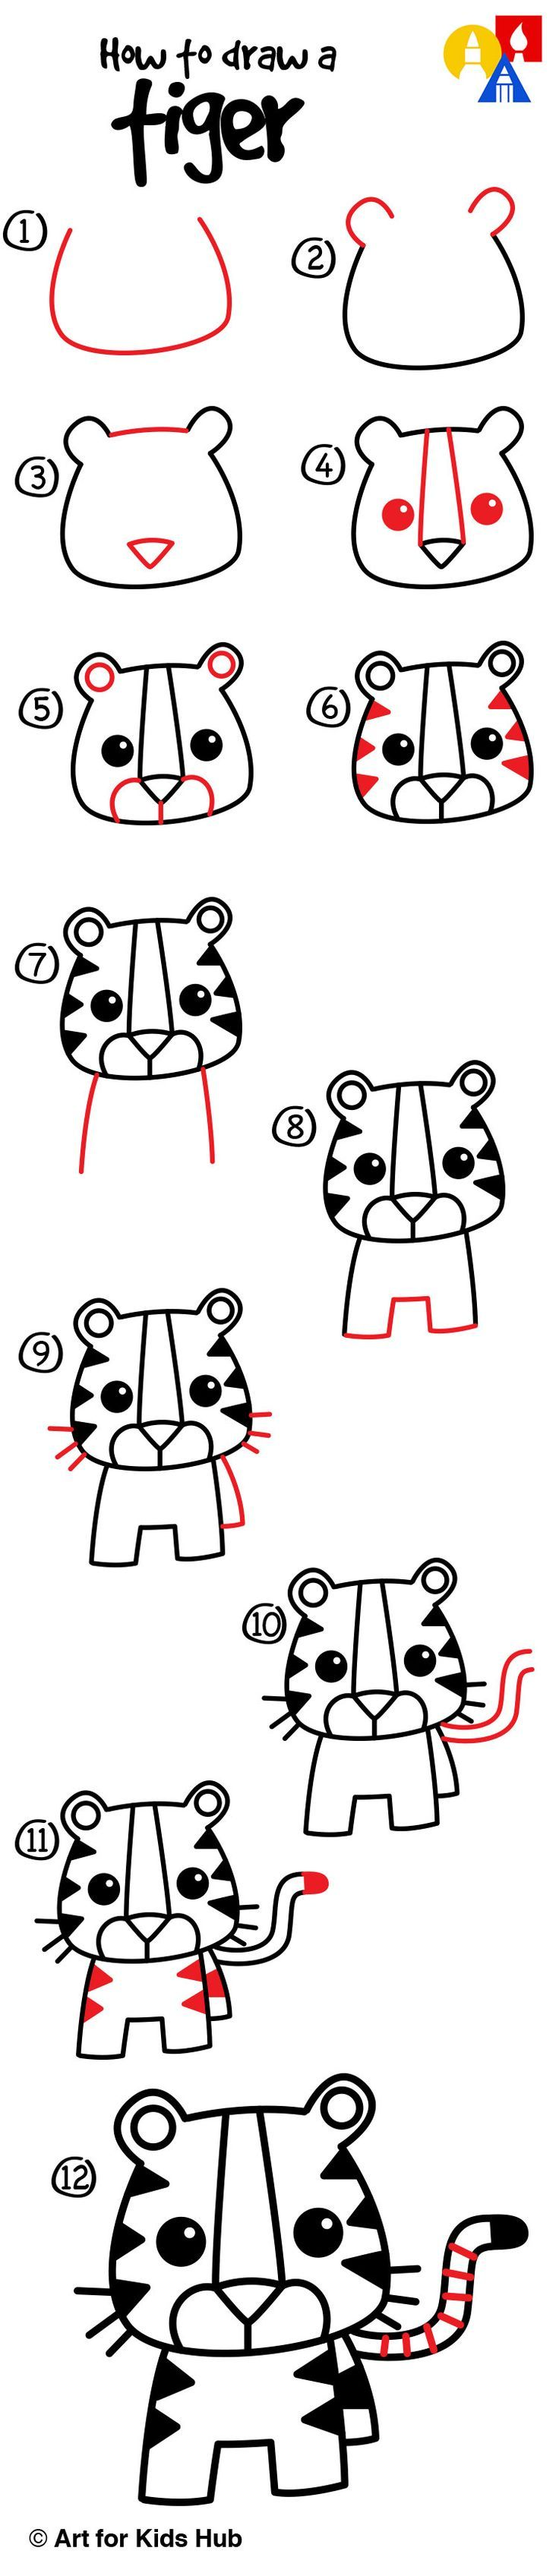 how to draw a cartoon tiger art for kids hub - Cartoon Drawings Of Kids